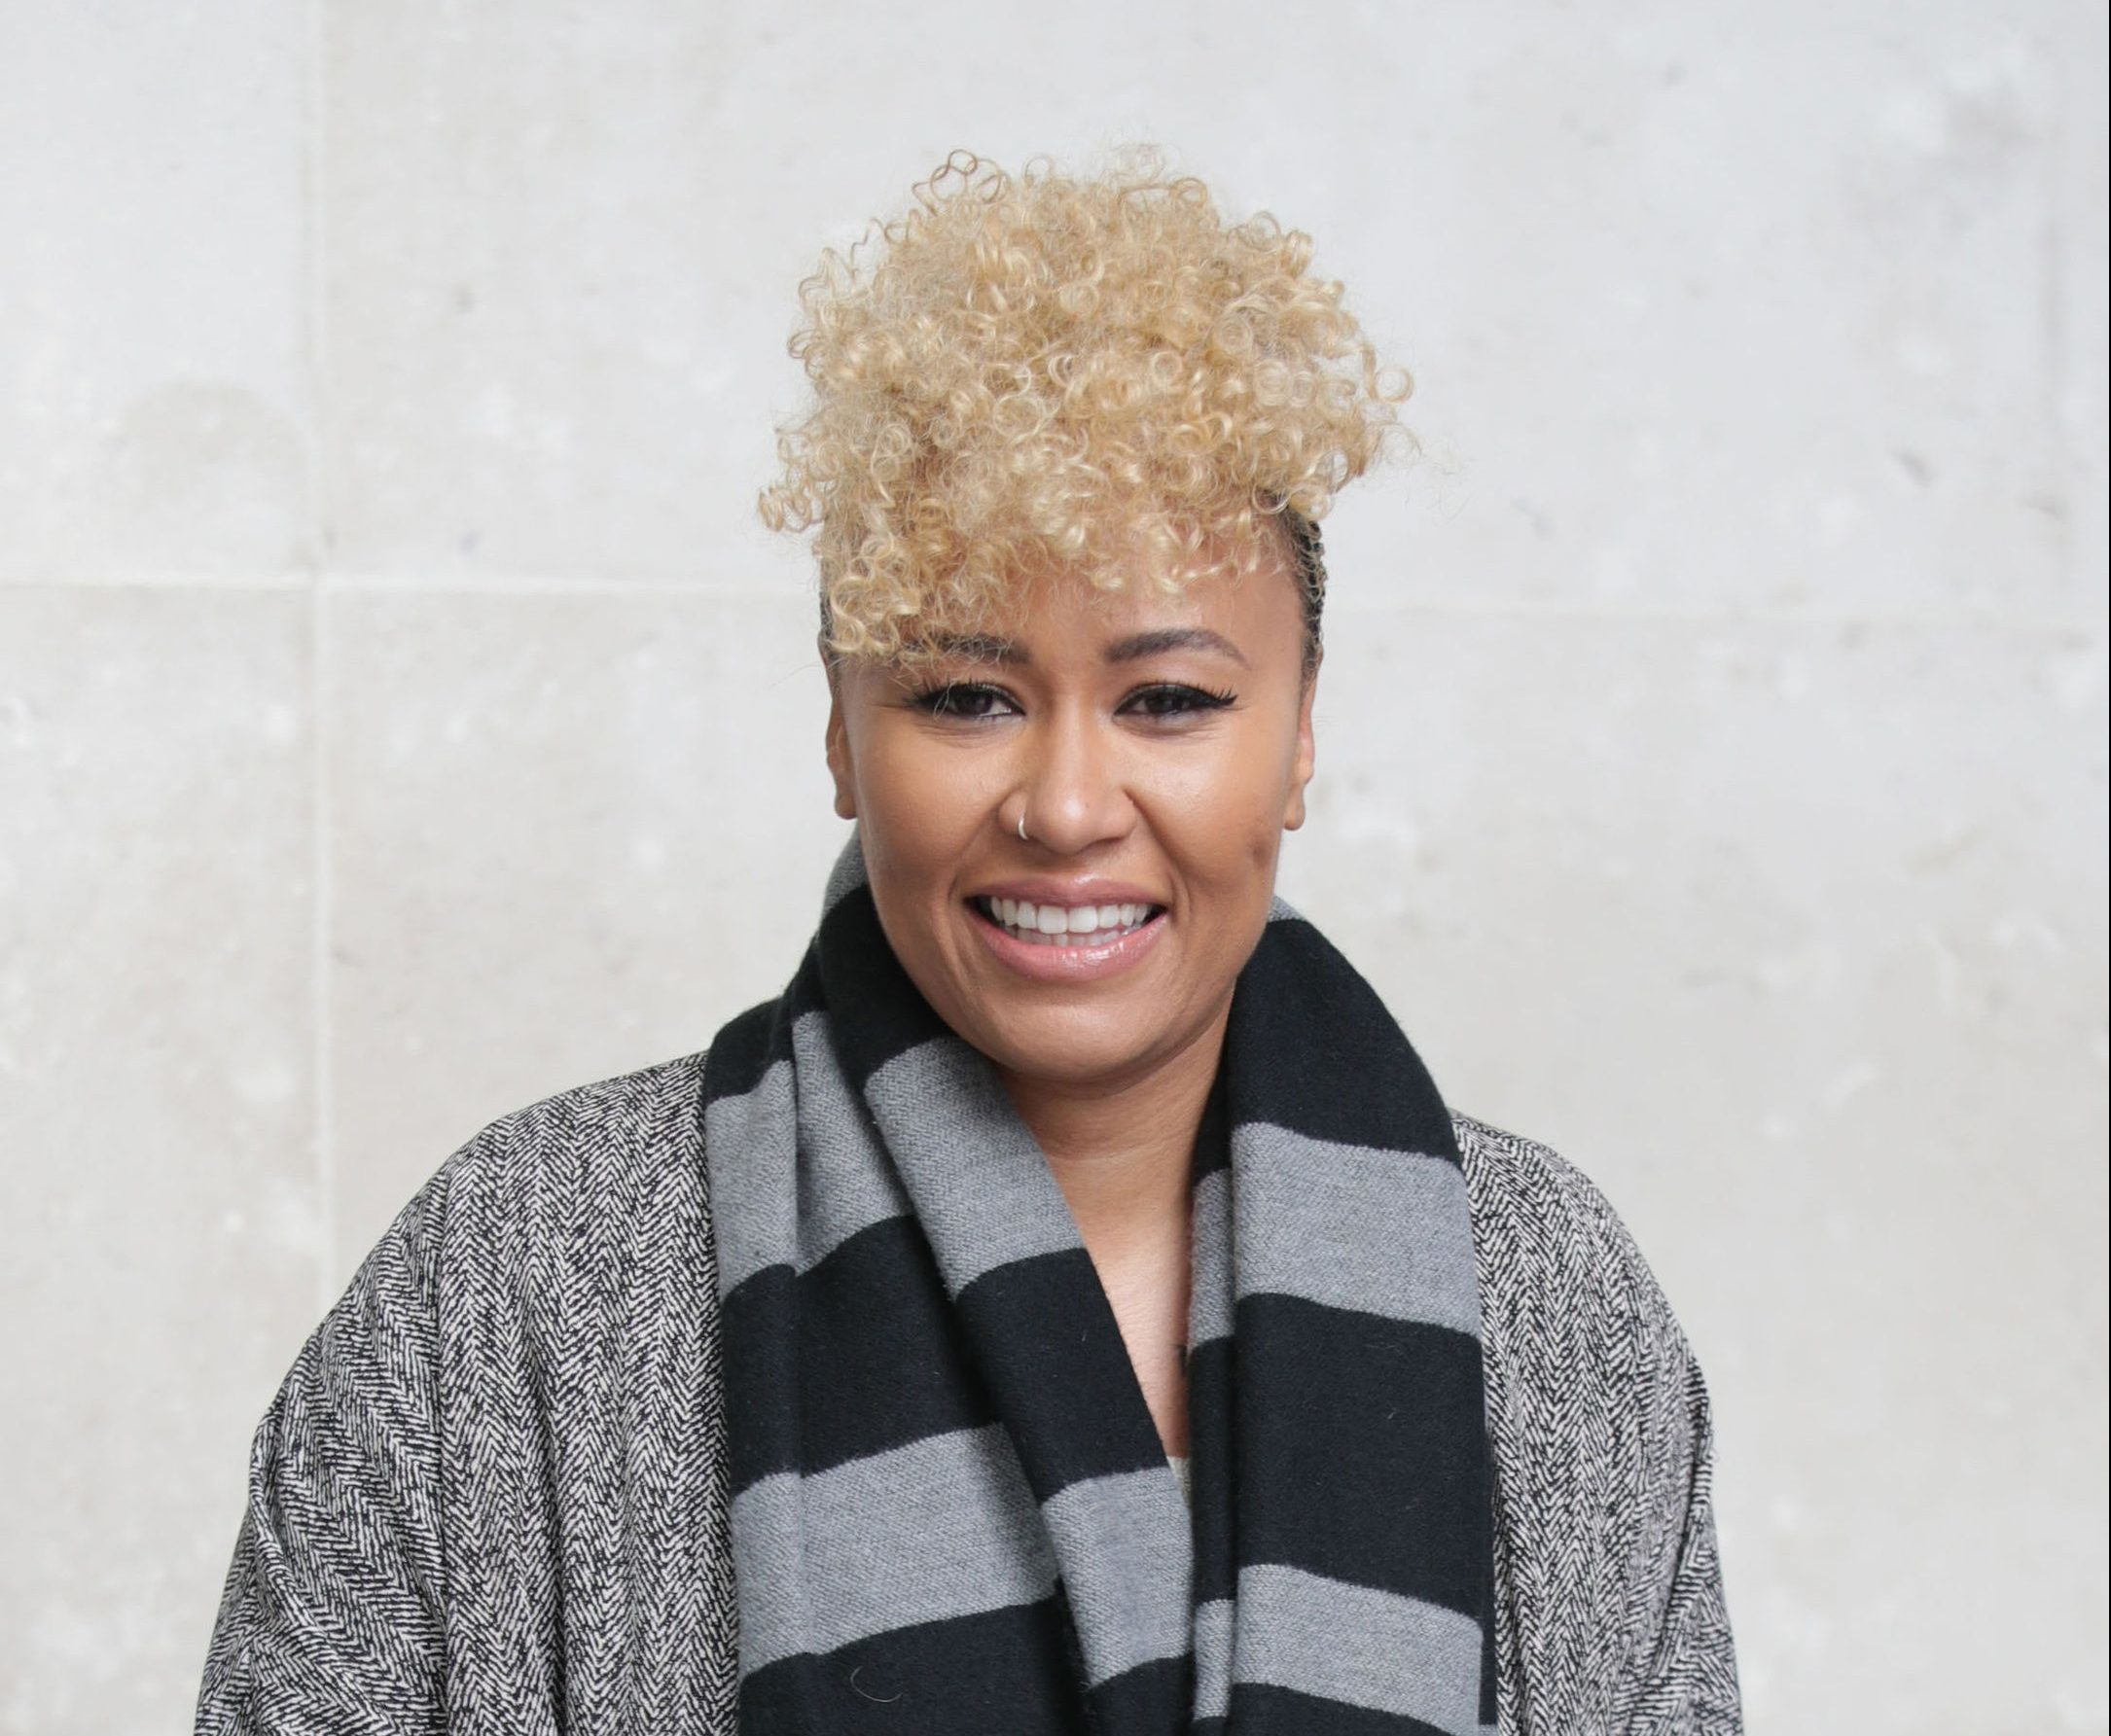 Singer Emeli Sande, who has been awarded an MBE in the Queen's Birthday Honours List.